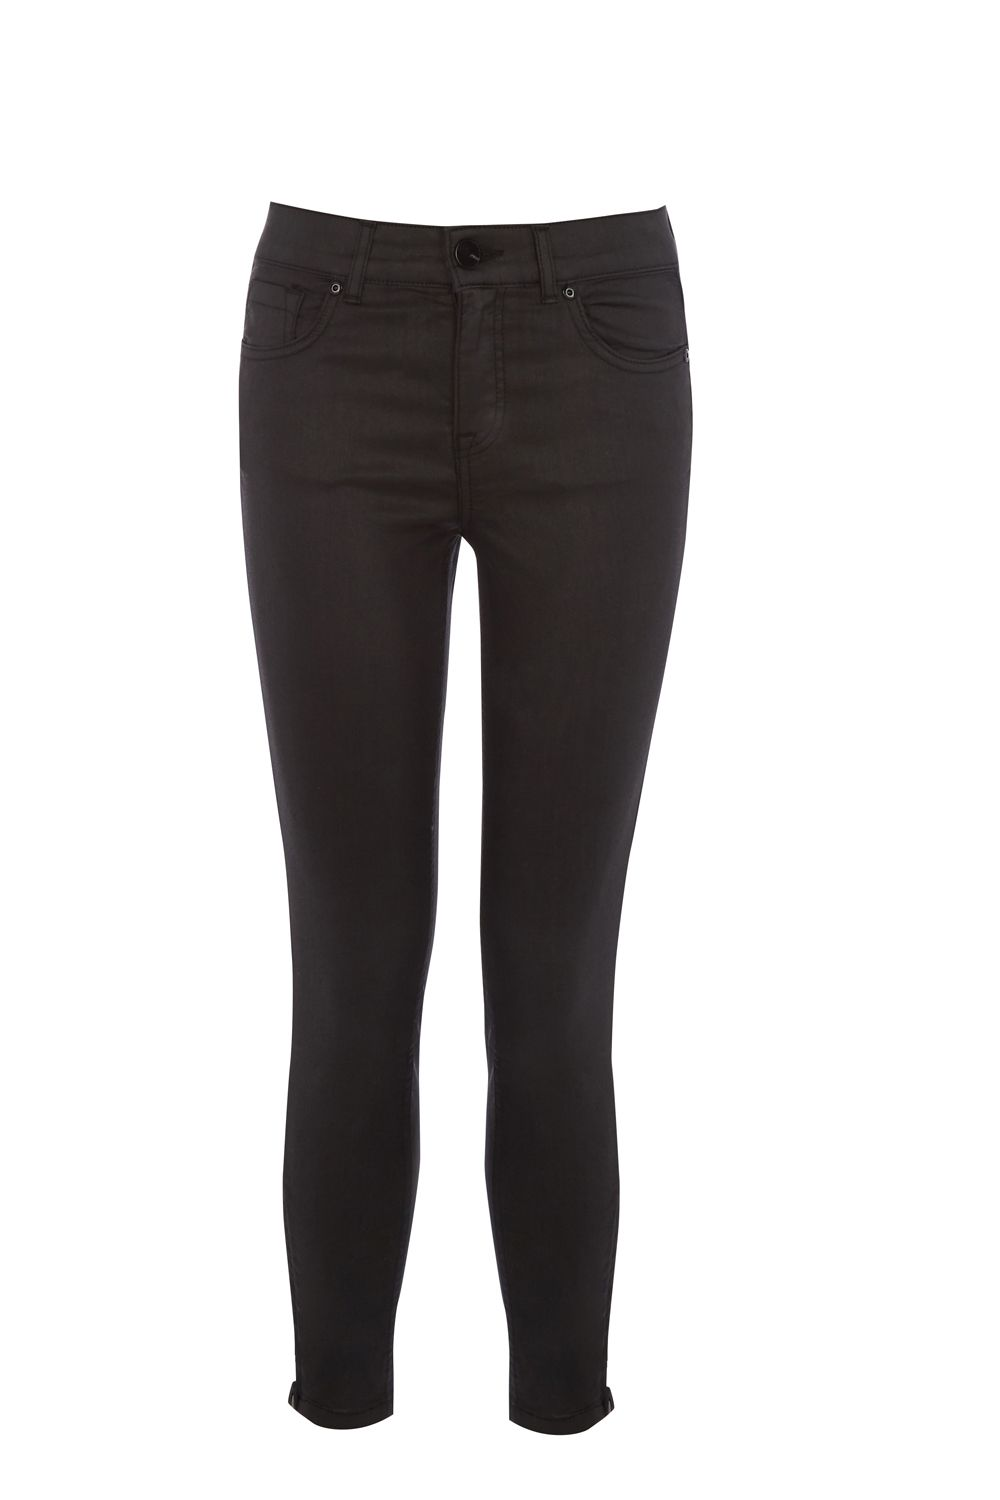 Oasis Black Coated Isabella Skinny Jeans, Black